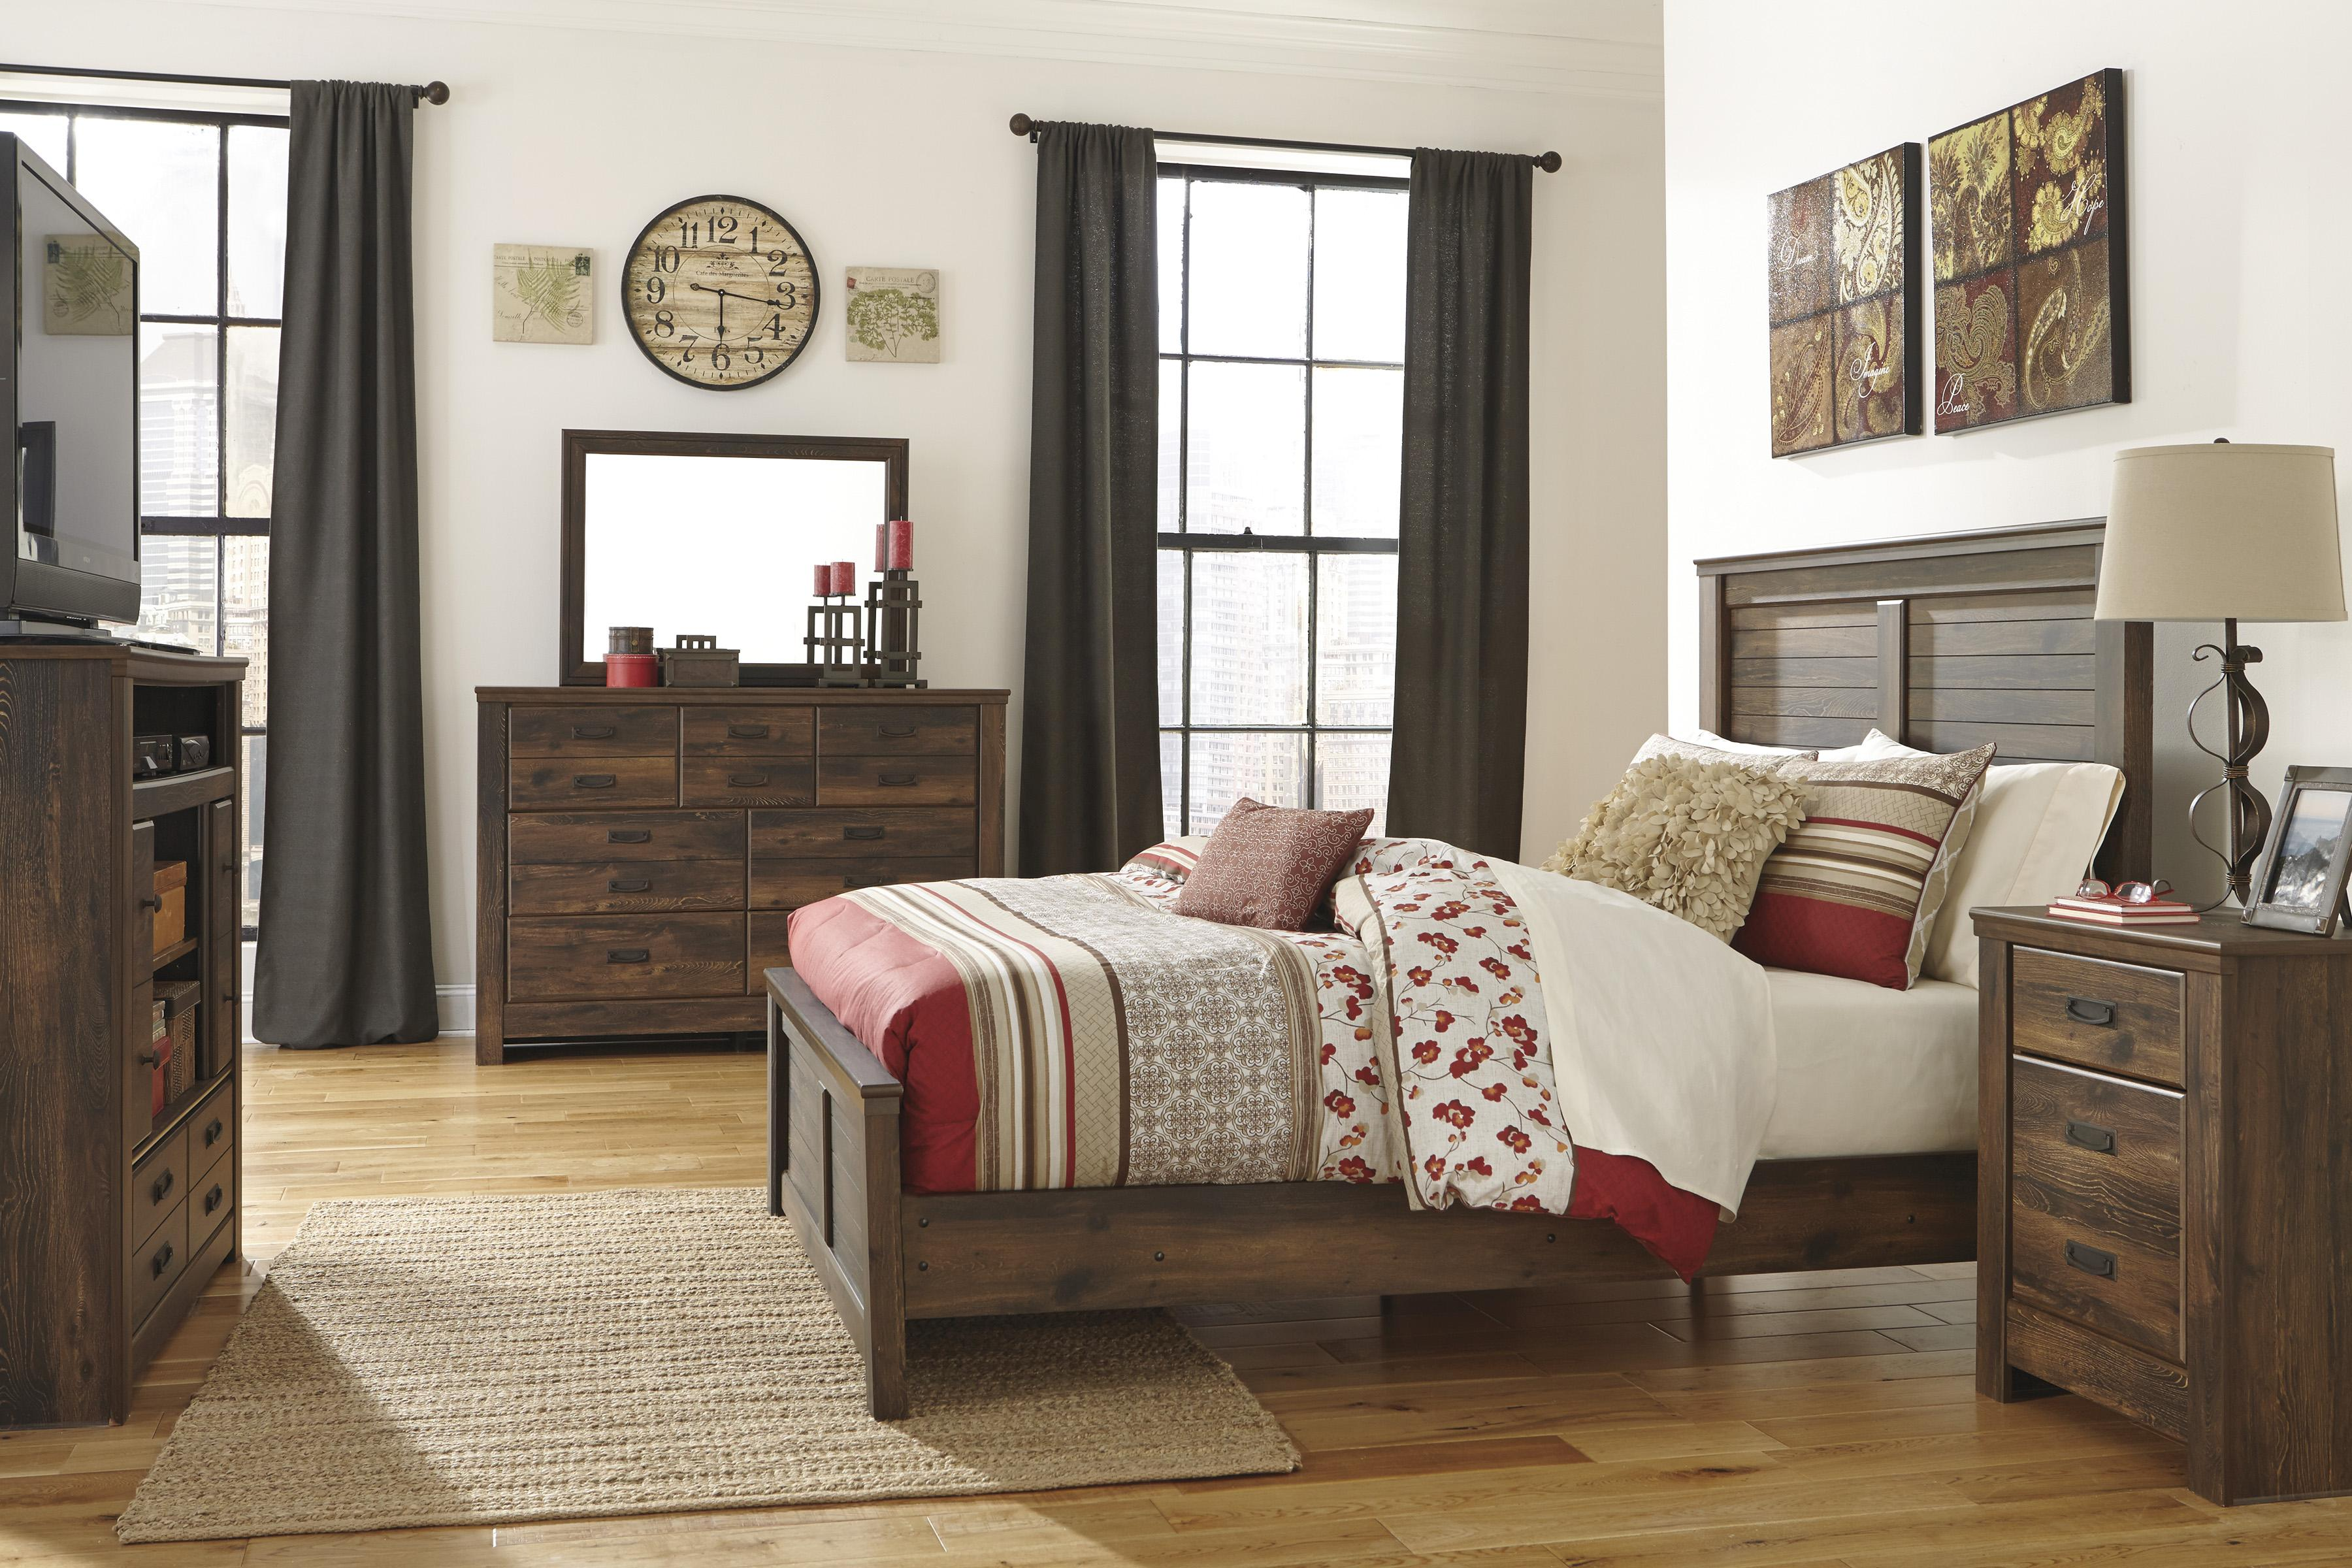 Signature Design by Ashley Quinden Queen Bedroom Group - Item Number: B246 Q Bedroom Group 5